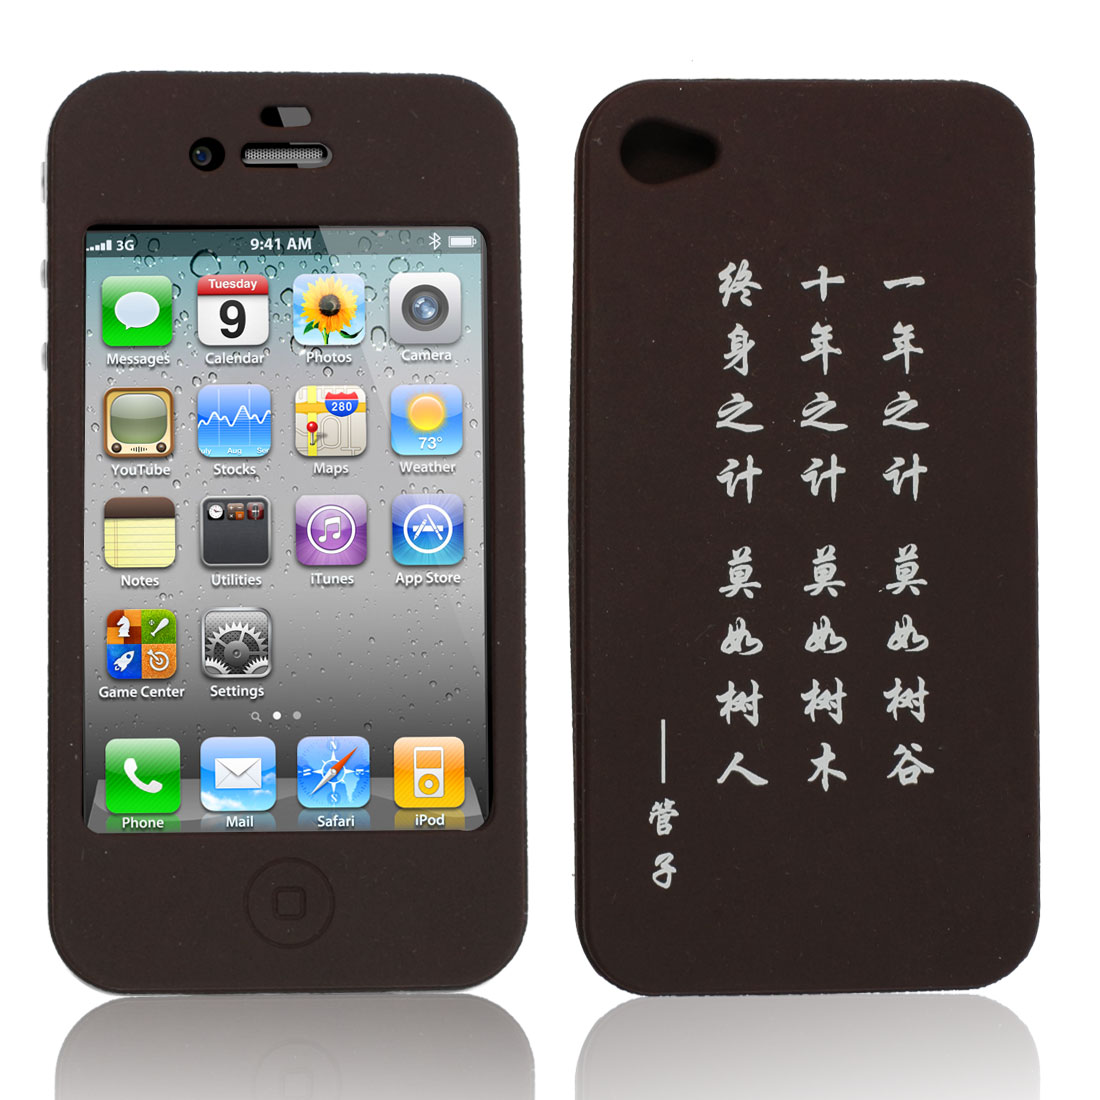 Chinese Aphorism Print Soft Plastic Case Cover Brown for iPhone 4 4G 4GS 4S